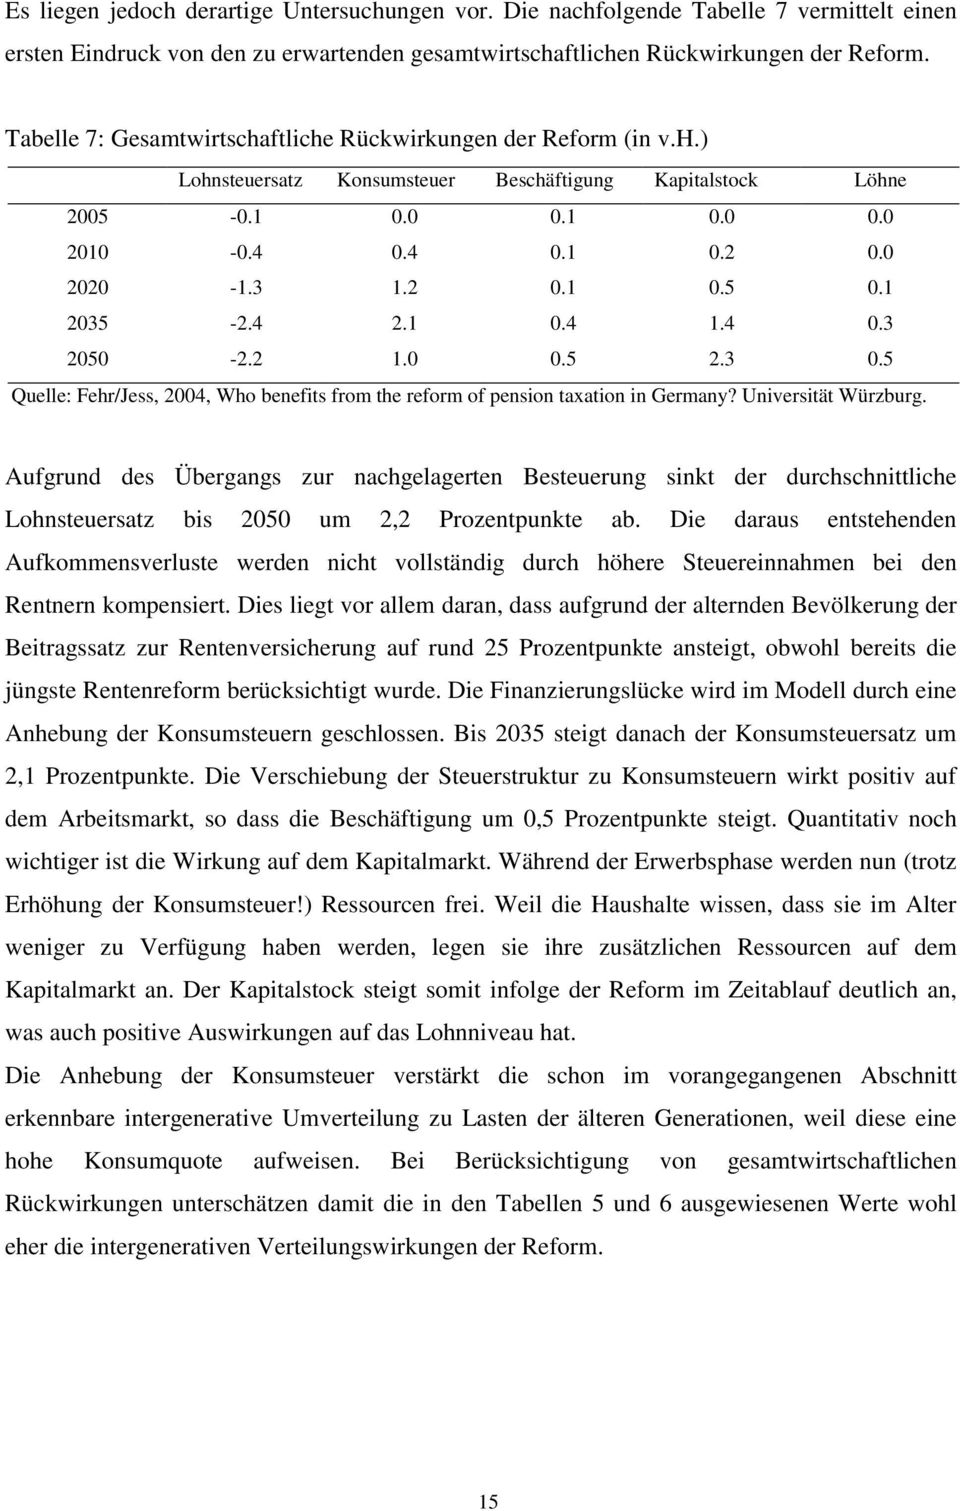 1 2035-2.4 2.1 0.4 1.4 0.3 2050-2.2 1.0 0.5 2.3 0.5 Quelle: Fehr/Jess, 2004, Who benefits from the reform of pension taxation in Germany? Universität Würzburg.